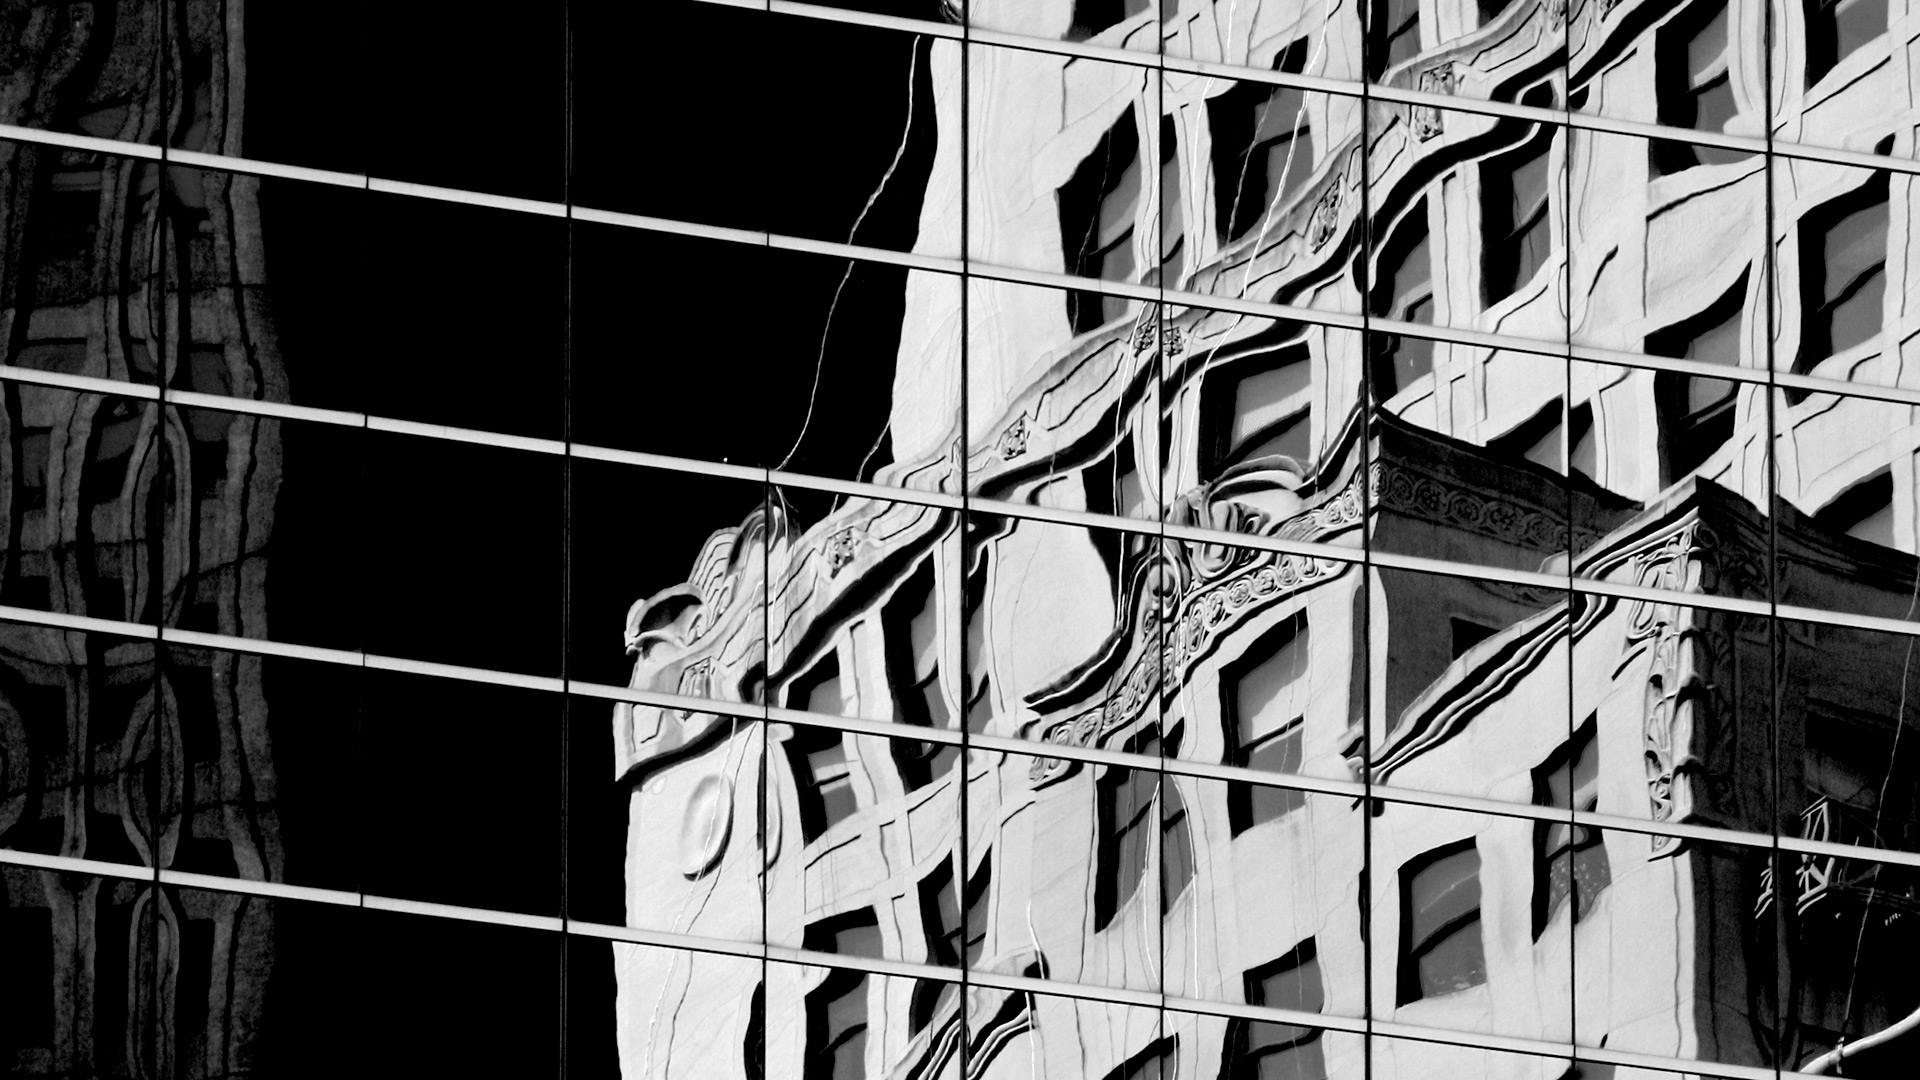 Building reflections - Zone of insolvency